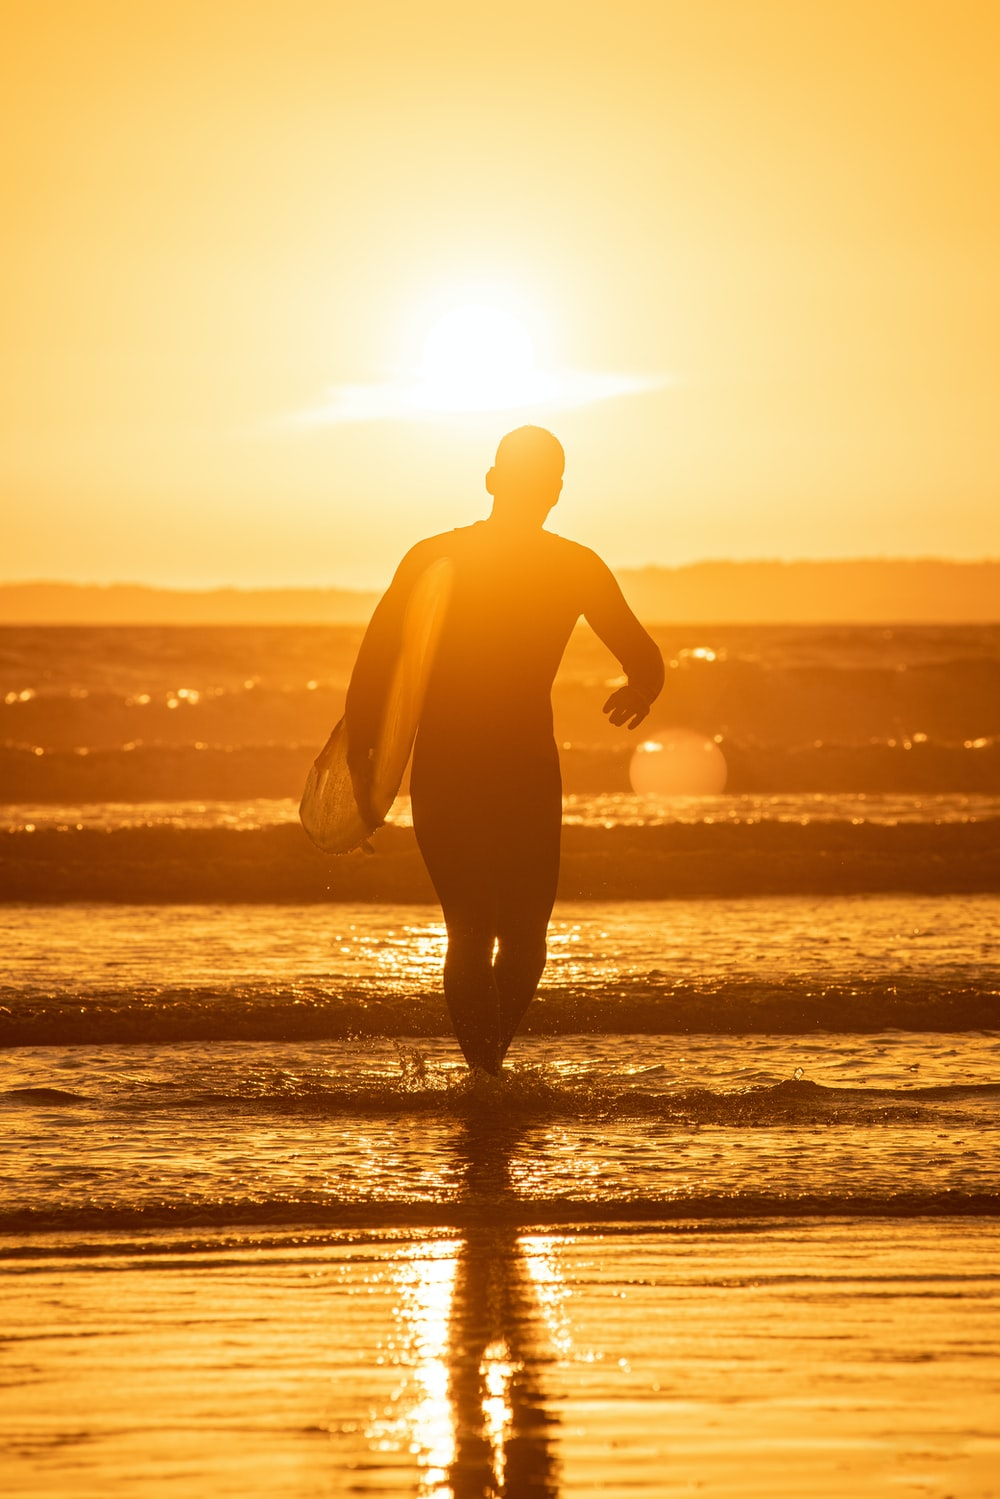 silhouette of man holding surfboard on beach during sunset